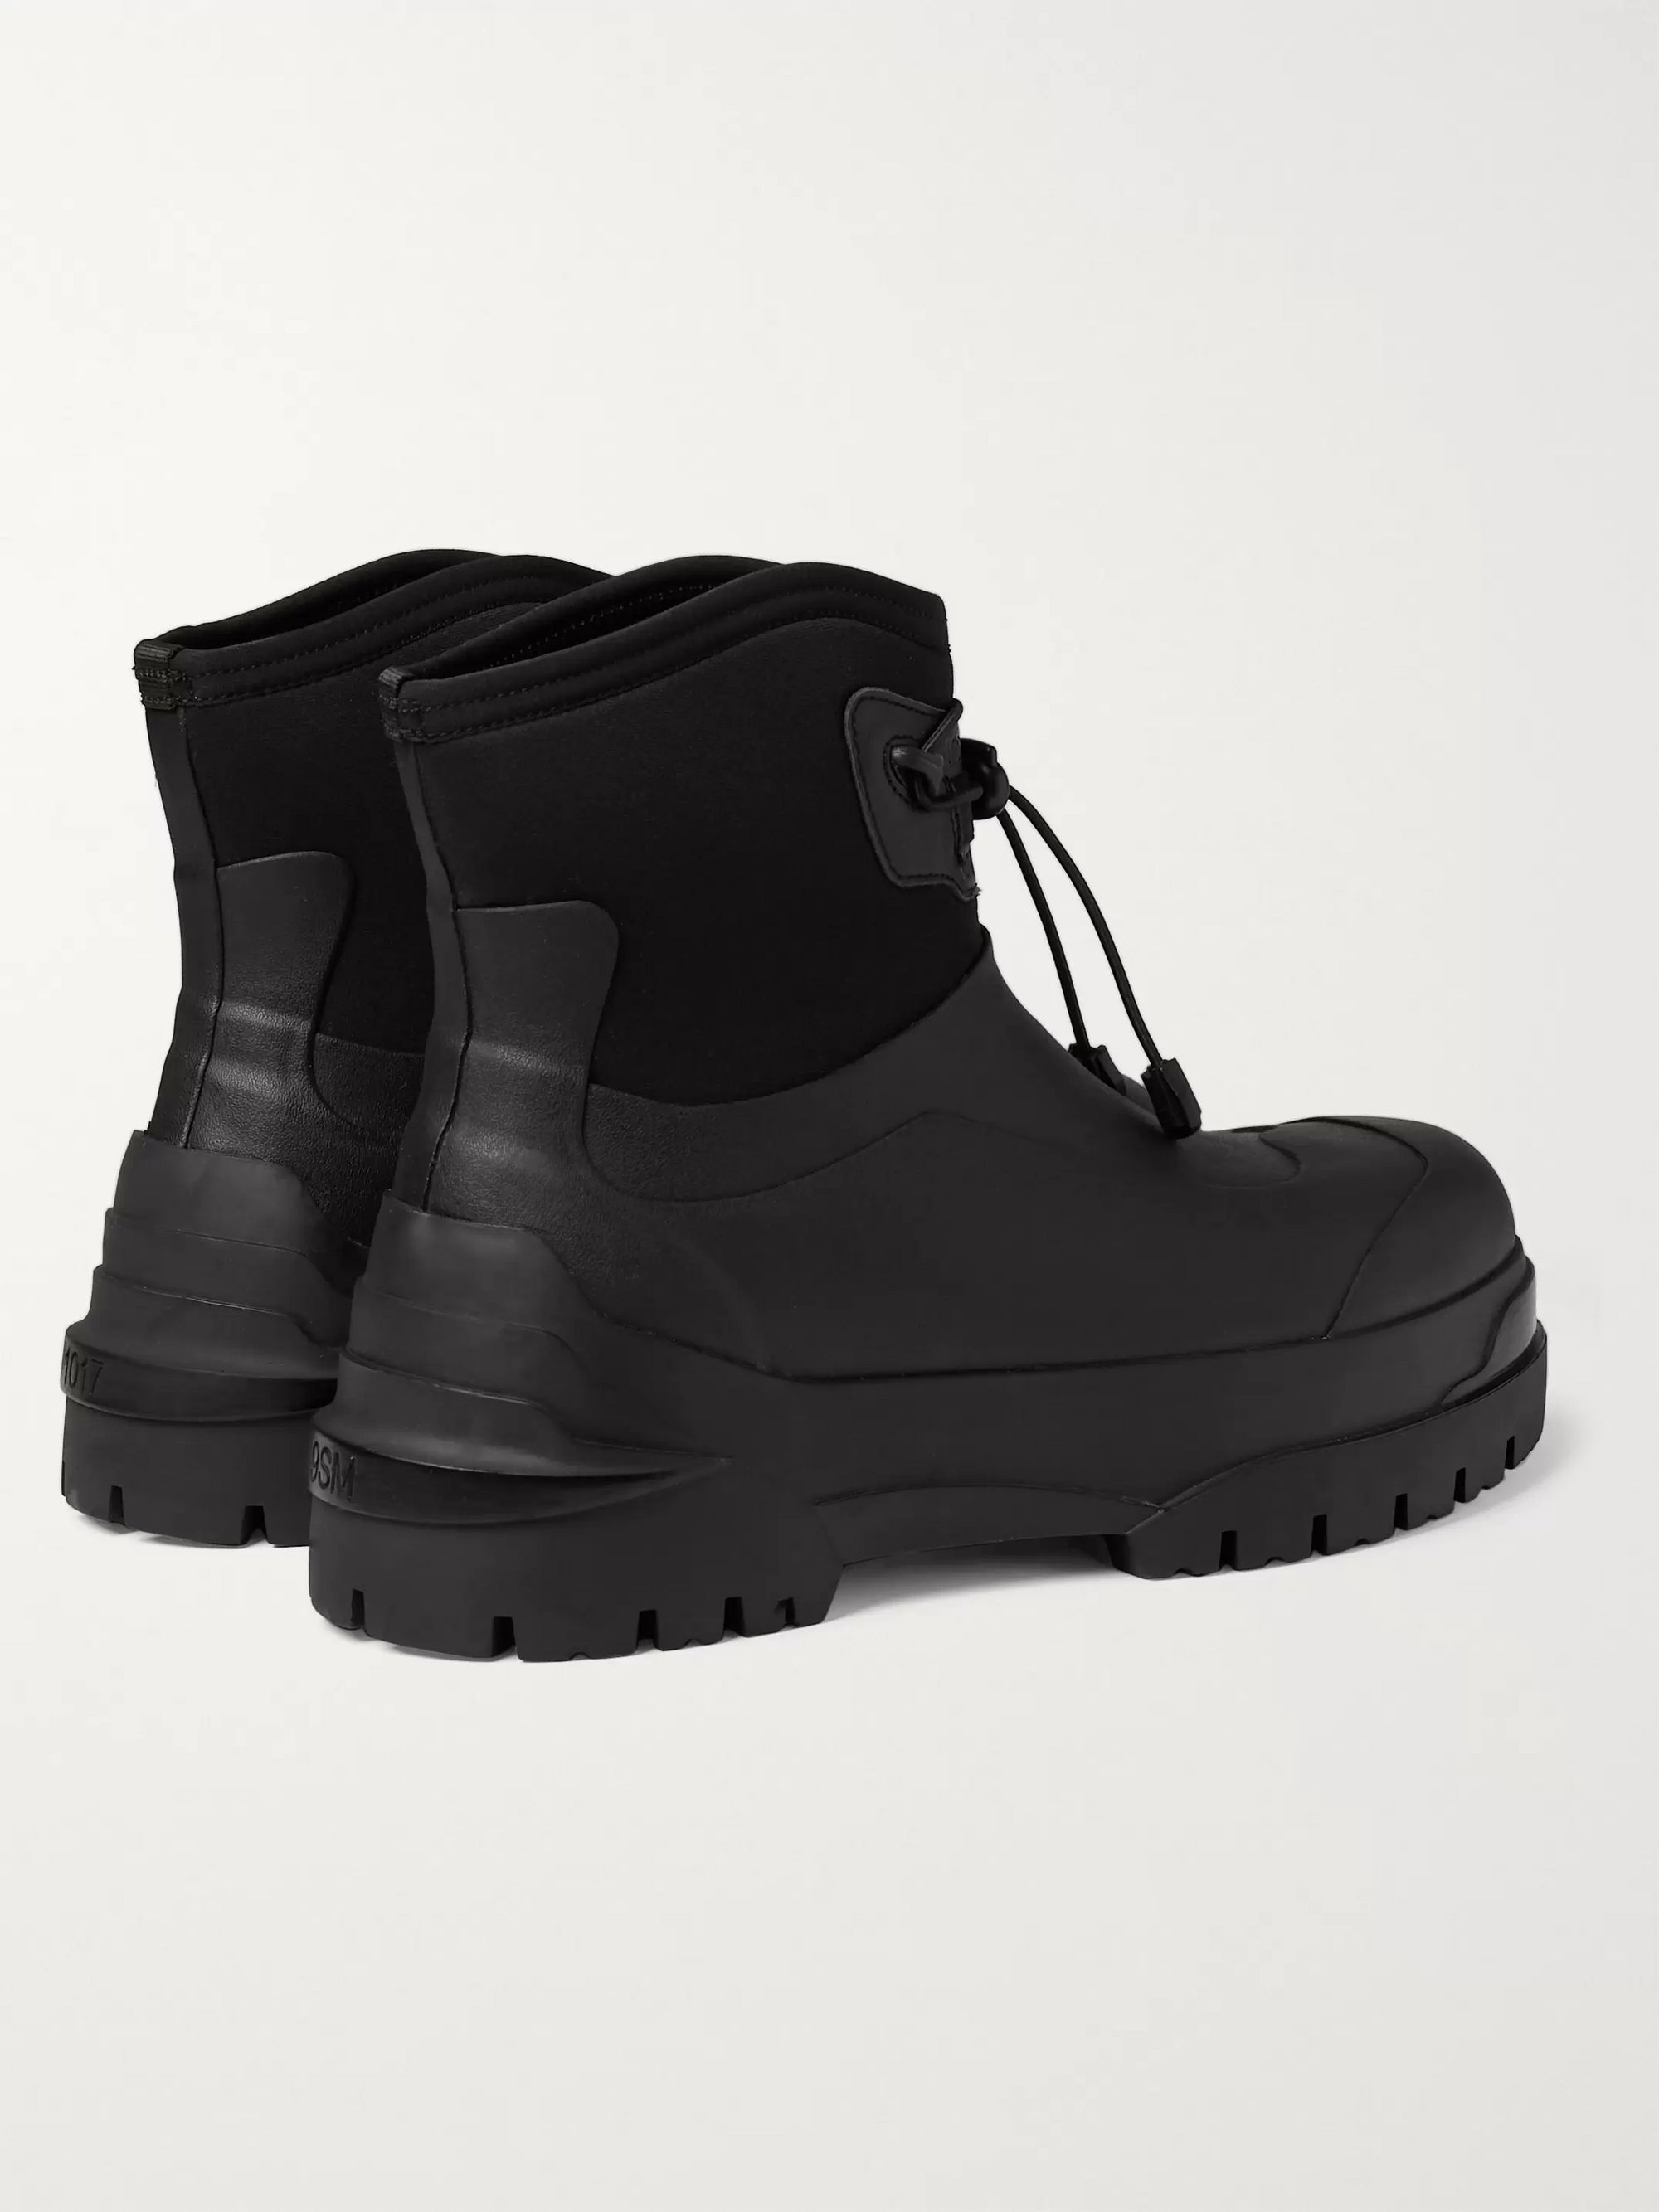 Moncler Genius 6 Moncler 1017 ALYX 9SM Leather-Trimmed Rubber and Neoprene Boots